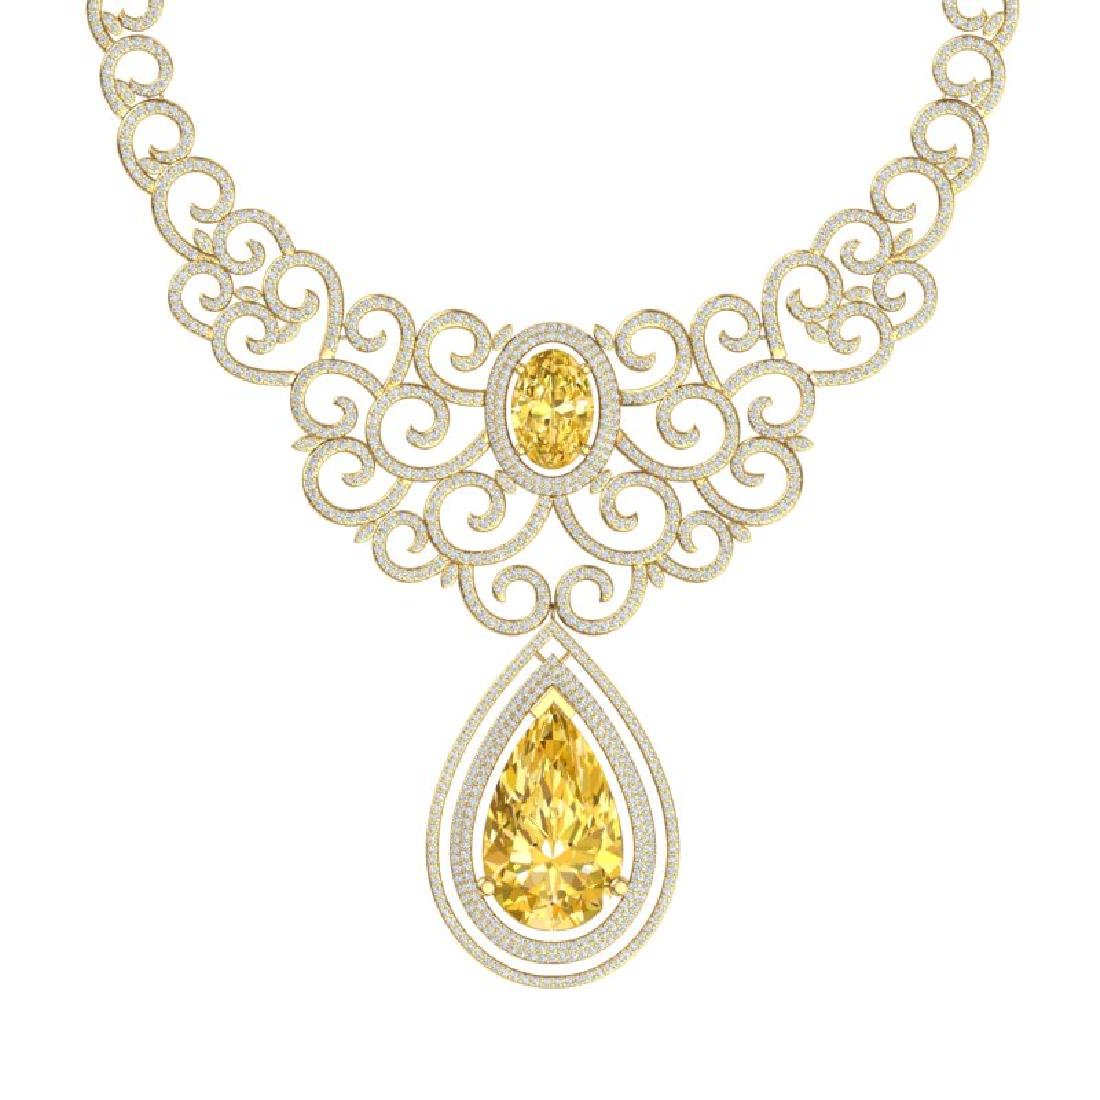 73.43 CTW Royalty Canary Citrine & VS Diamond Necklace - 2